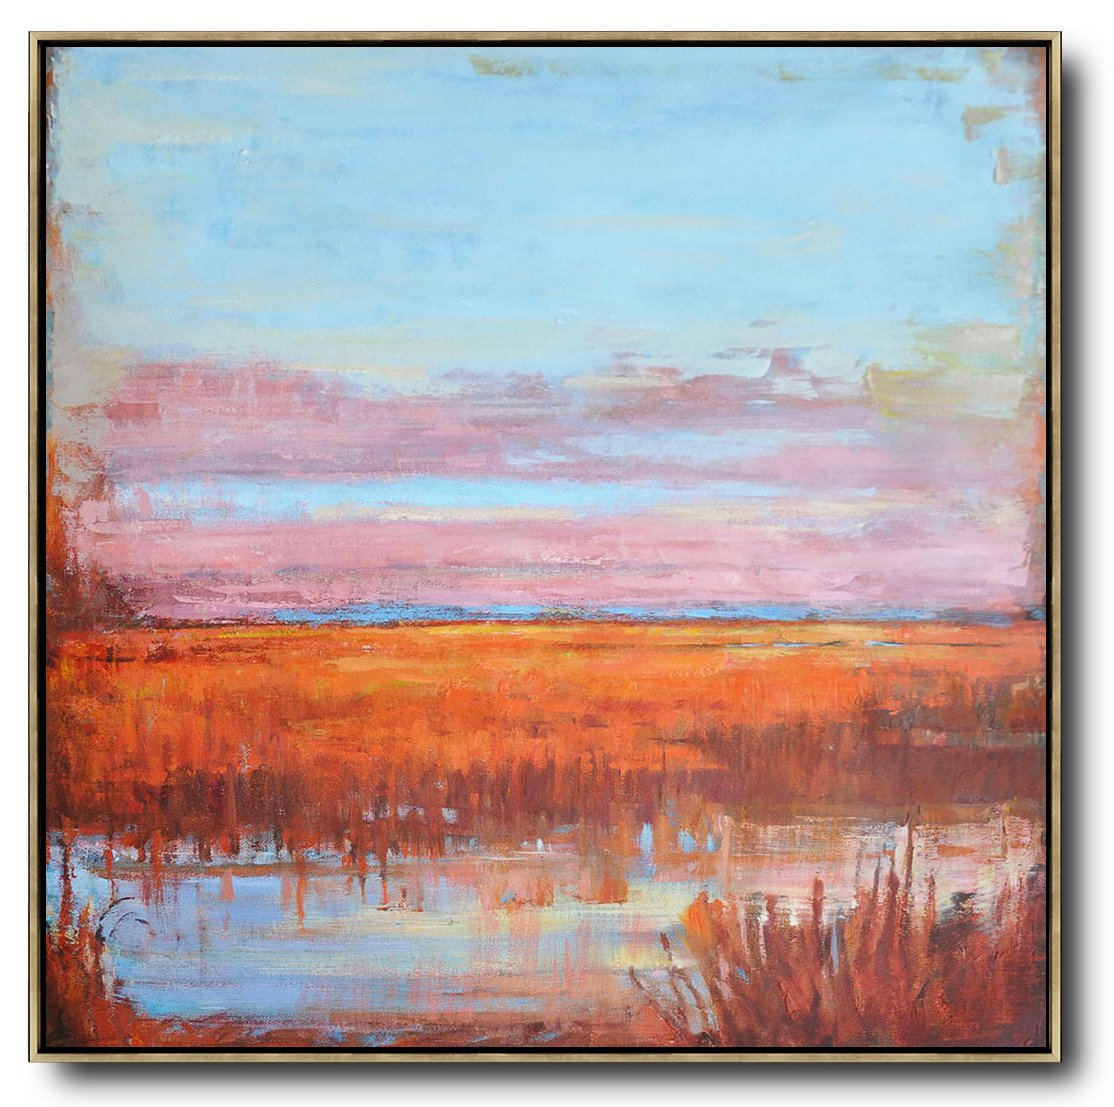 Large Abstract Art,Abstract Landscape Oil Painting,Contemporary Art Canvas Painting,Blue,Pink,Orange,Red.etc